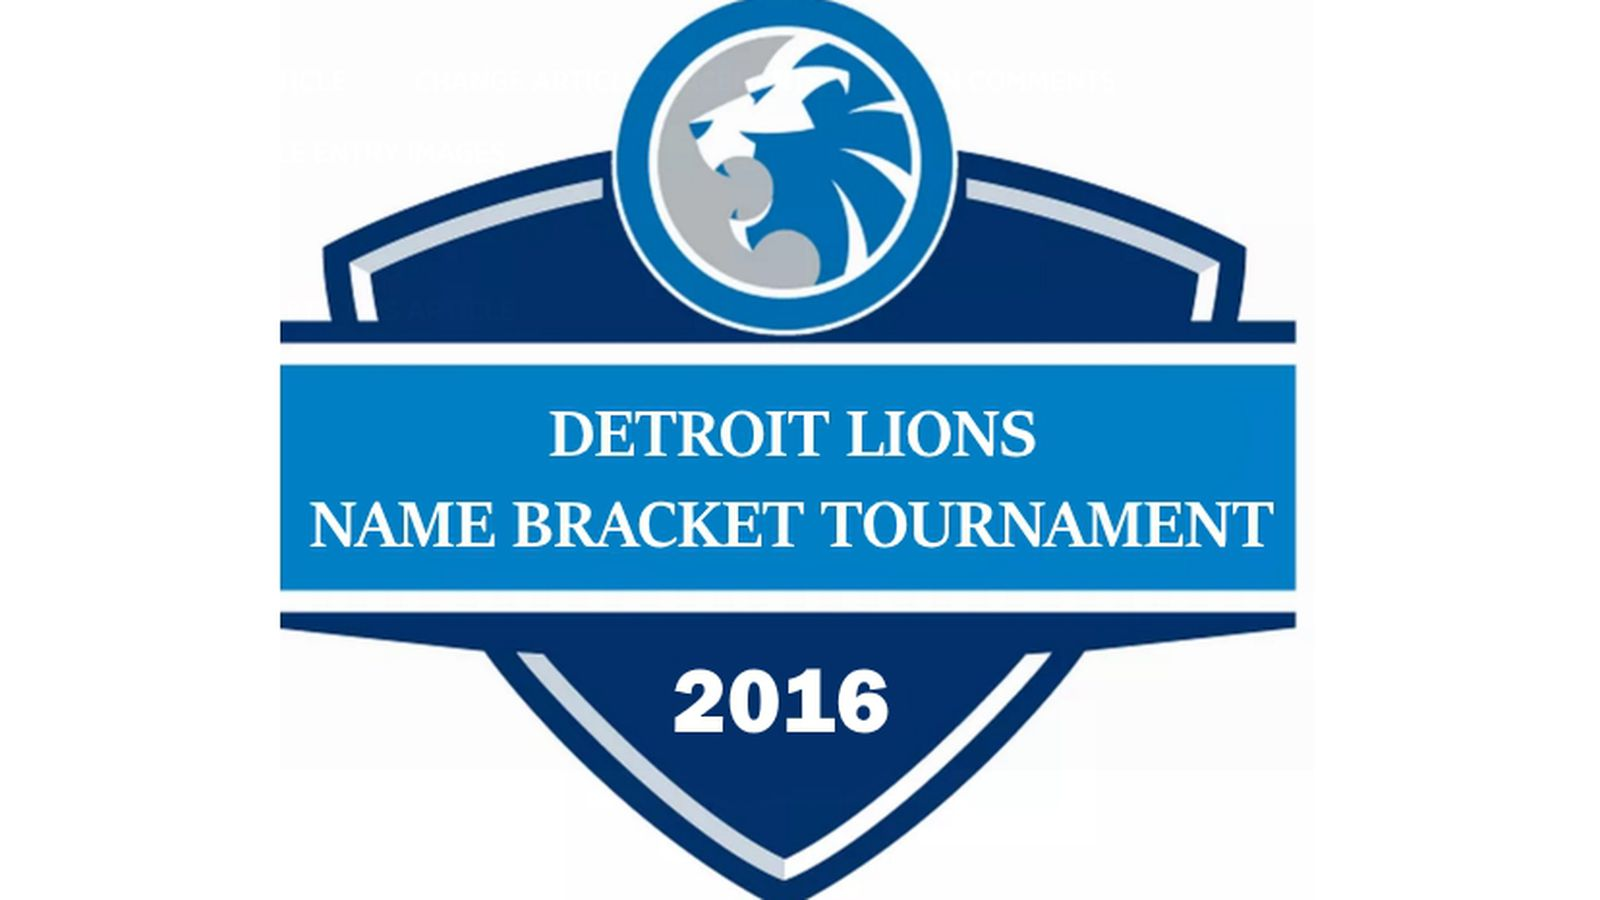 Name_bracket_2016_logo.0.0